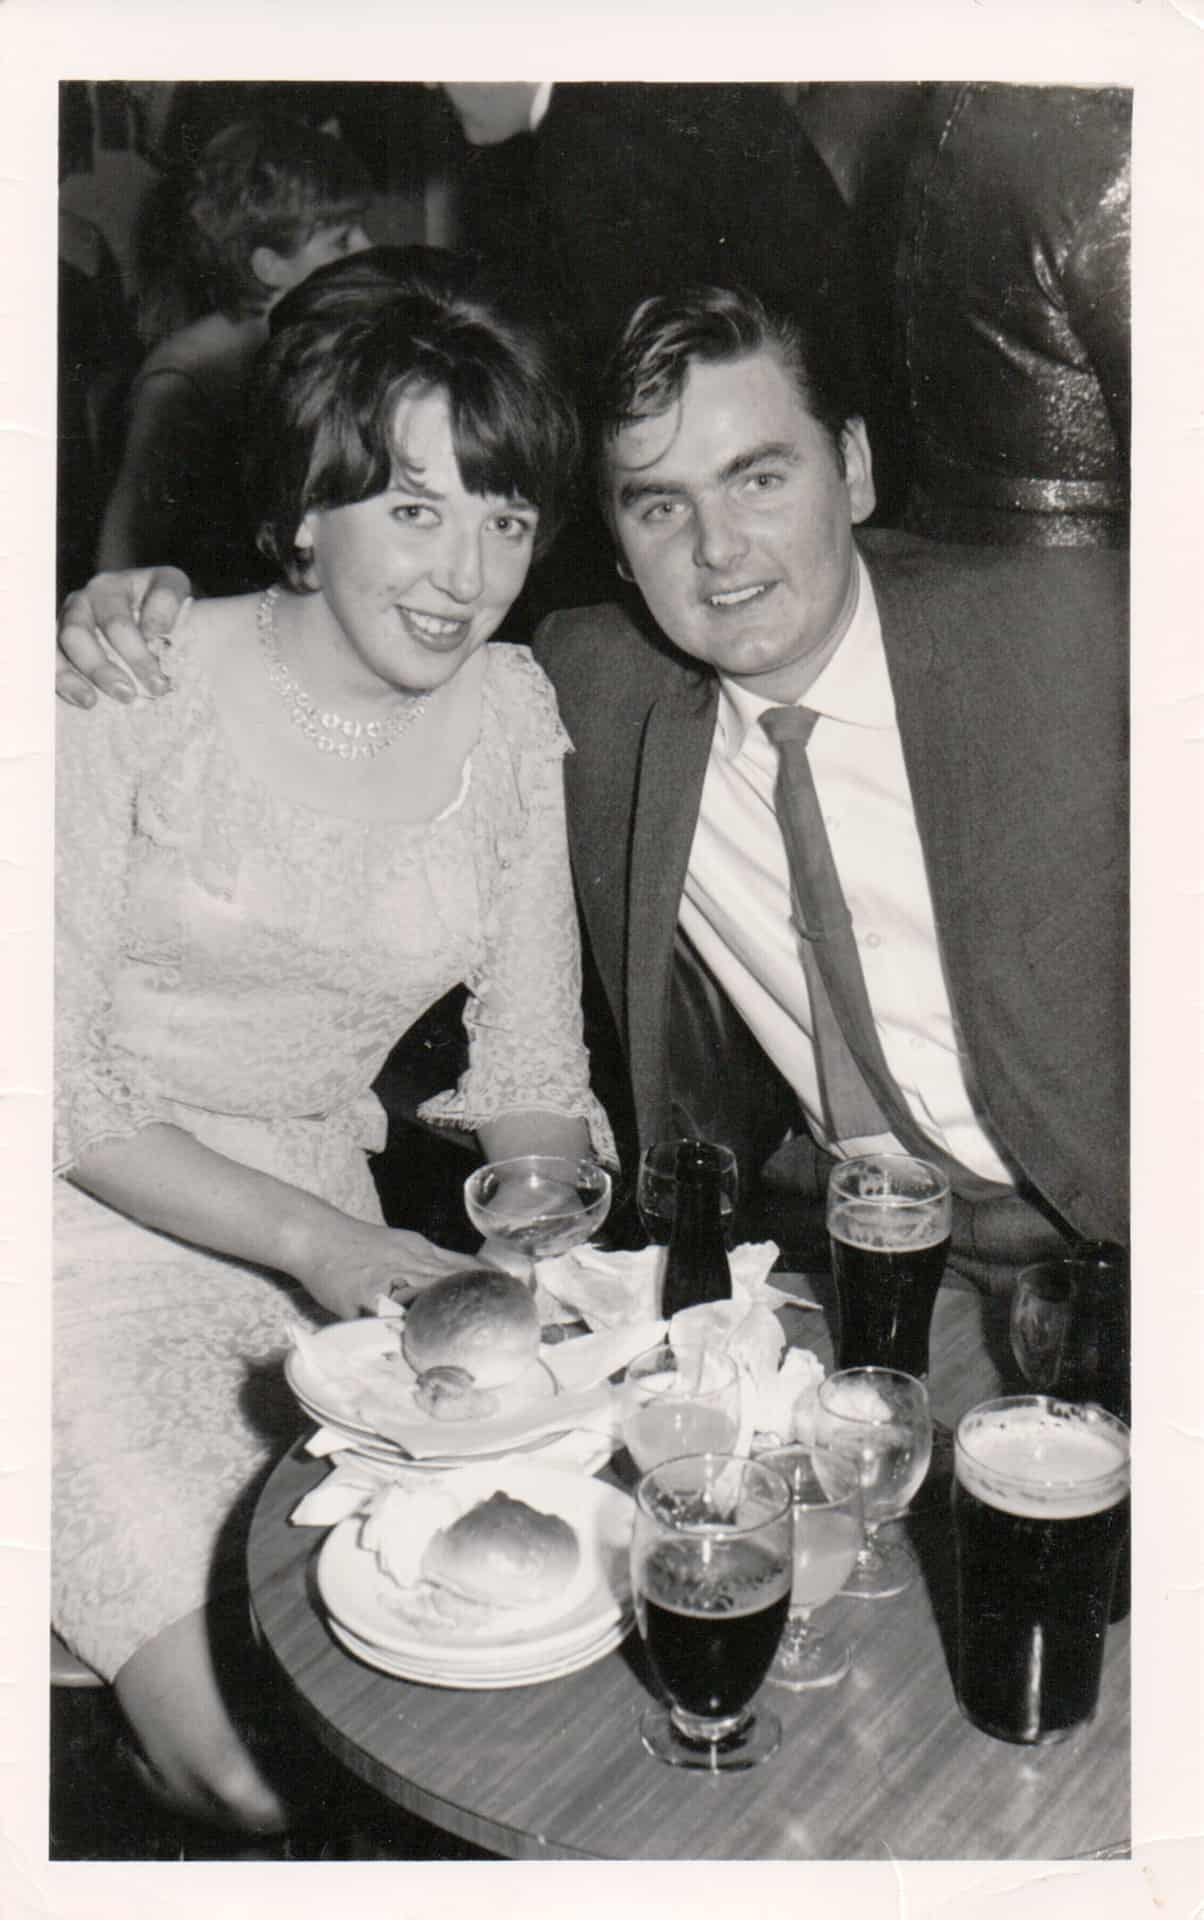 Betty and me on a night out at the Civic, Old Hill in about 1972. Betty and I got married in 1965 so we have been married for 53 years.